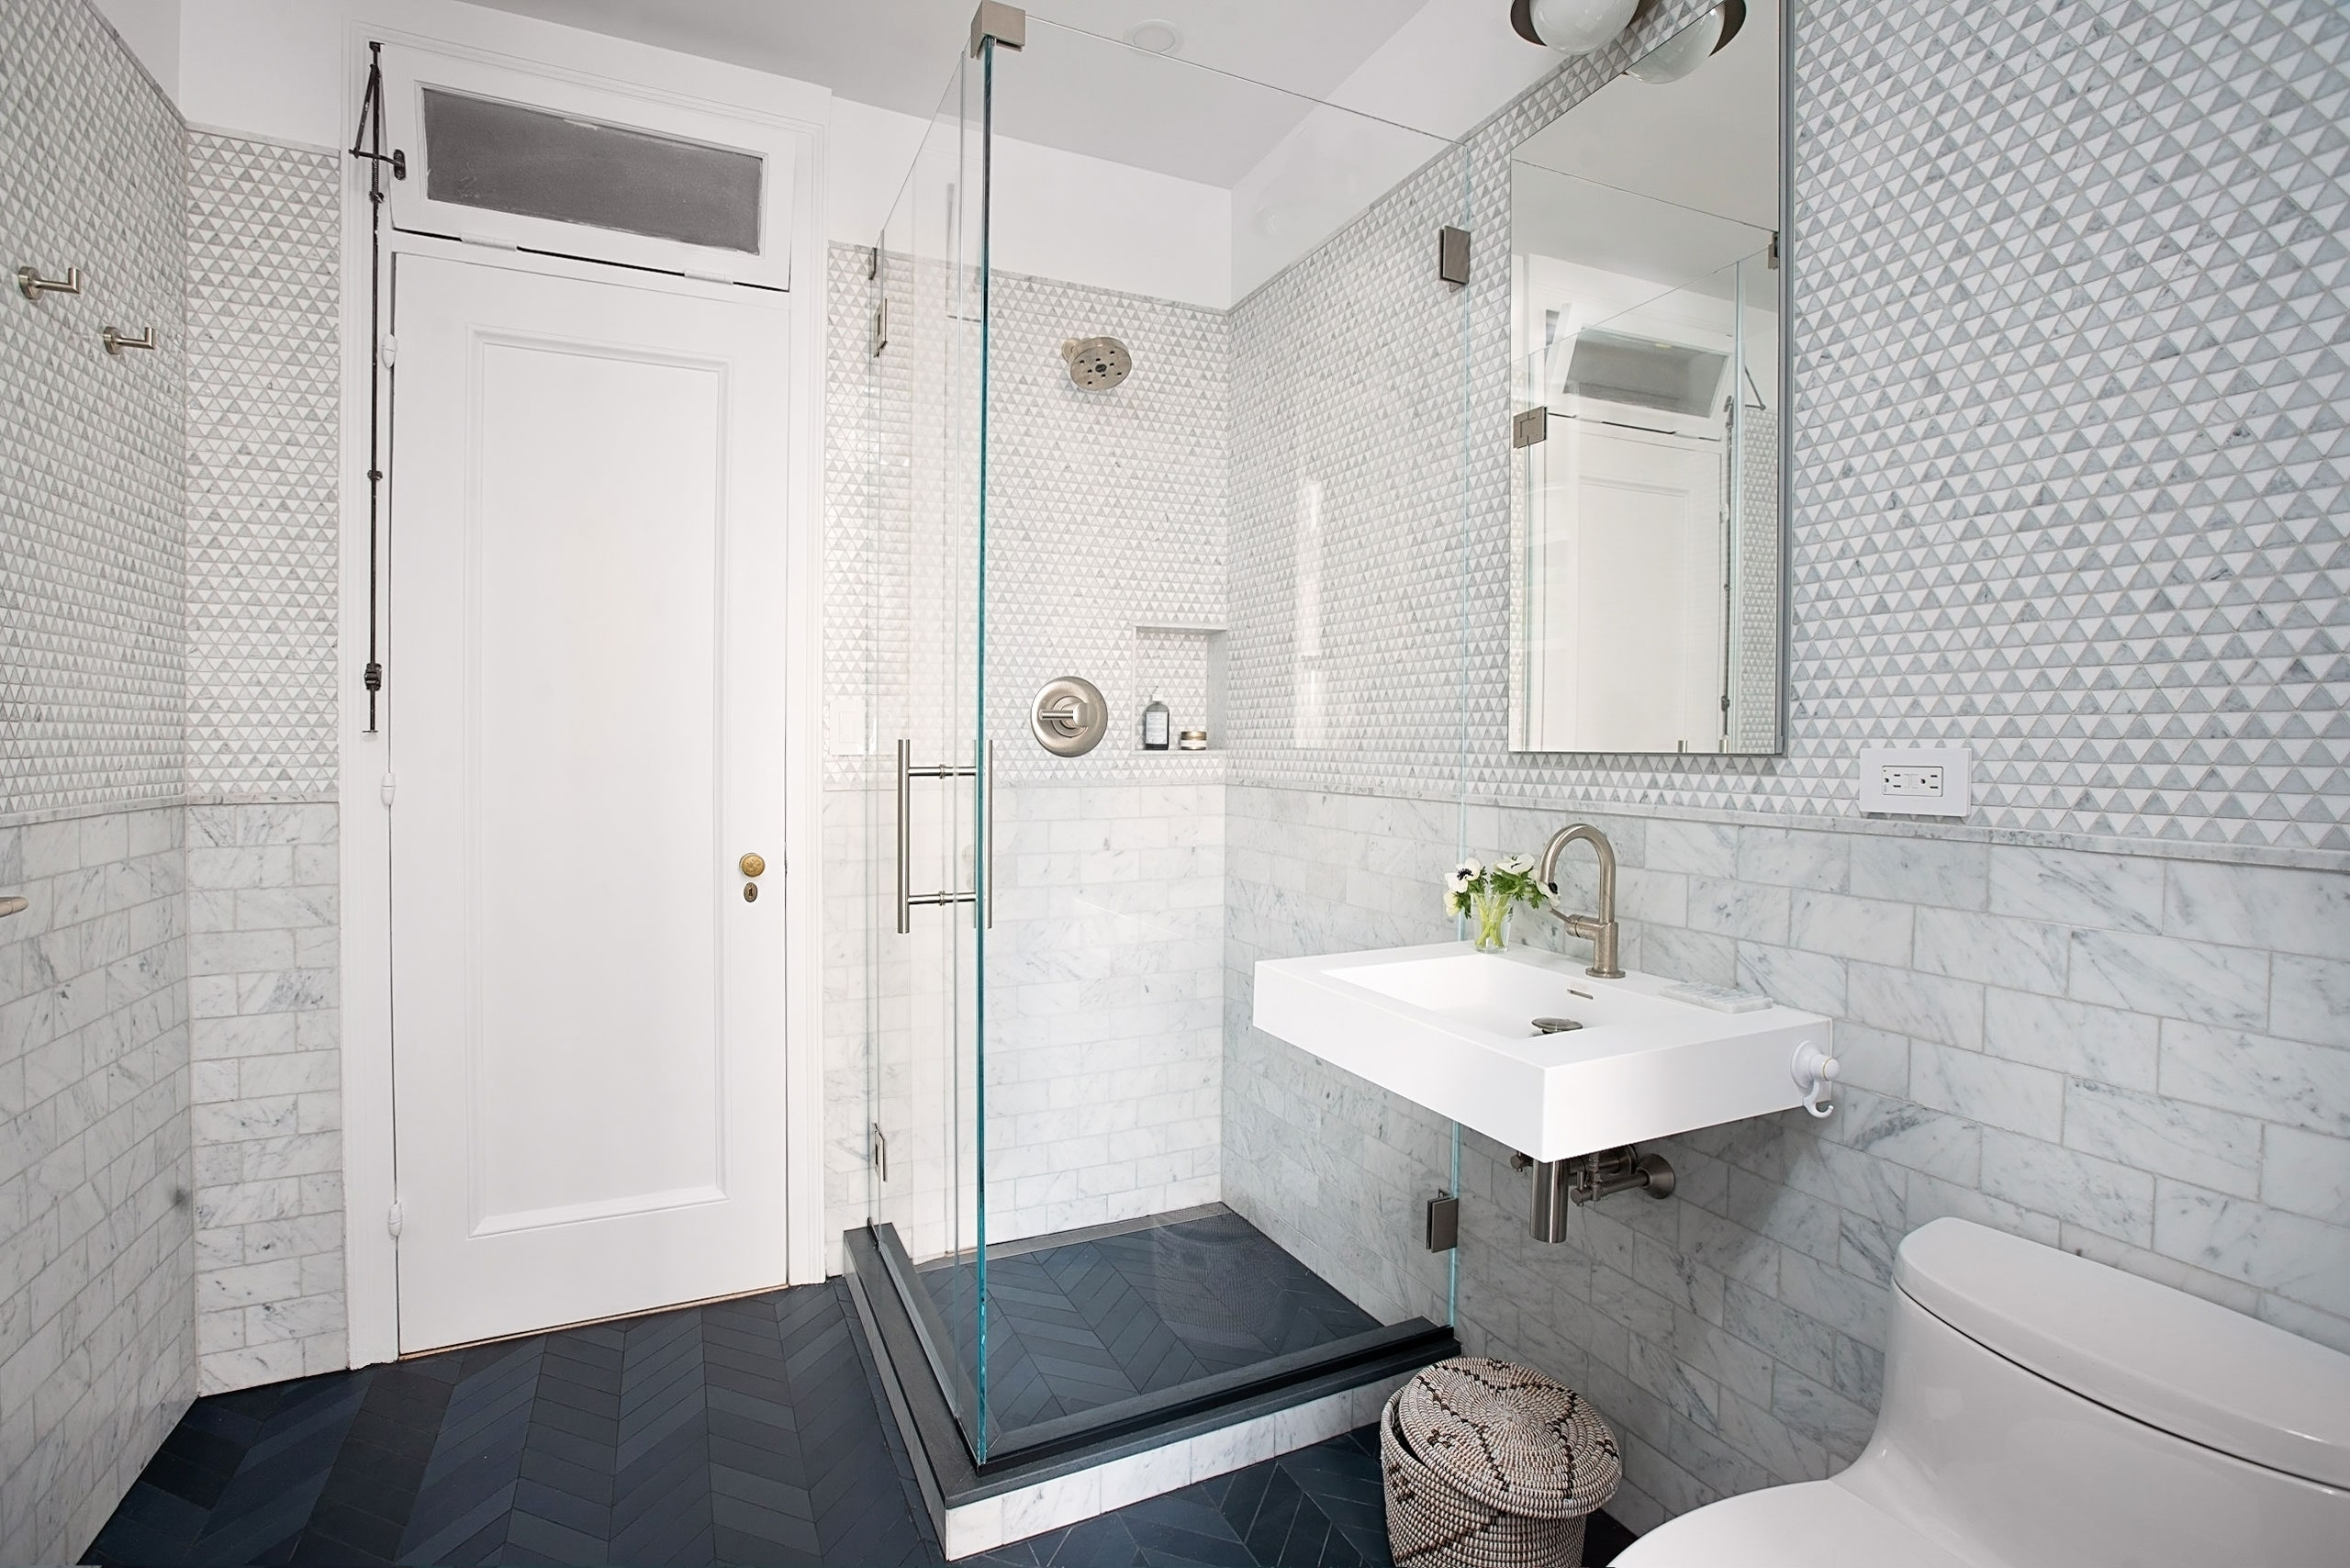 A Bathroom Remodel That Added Space And Laundry 20+ Combined Bathroom And Laundry Inspirations